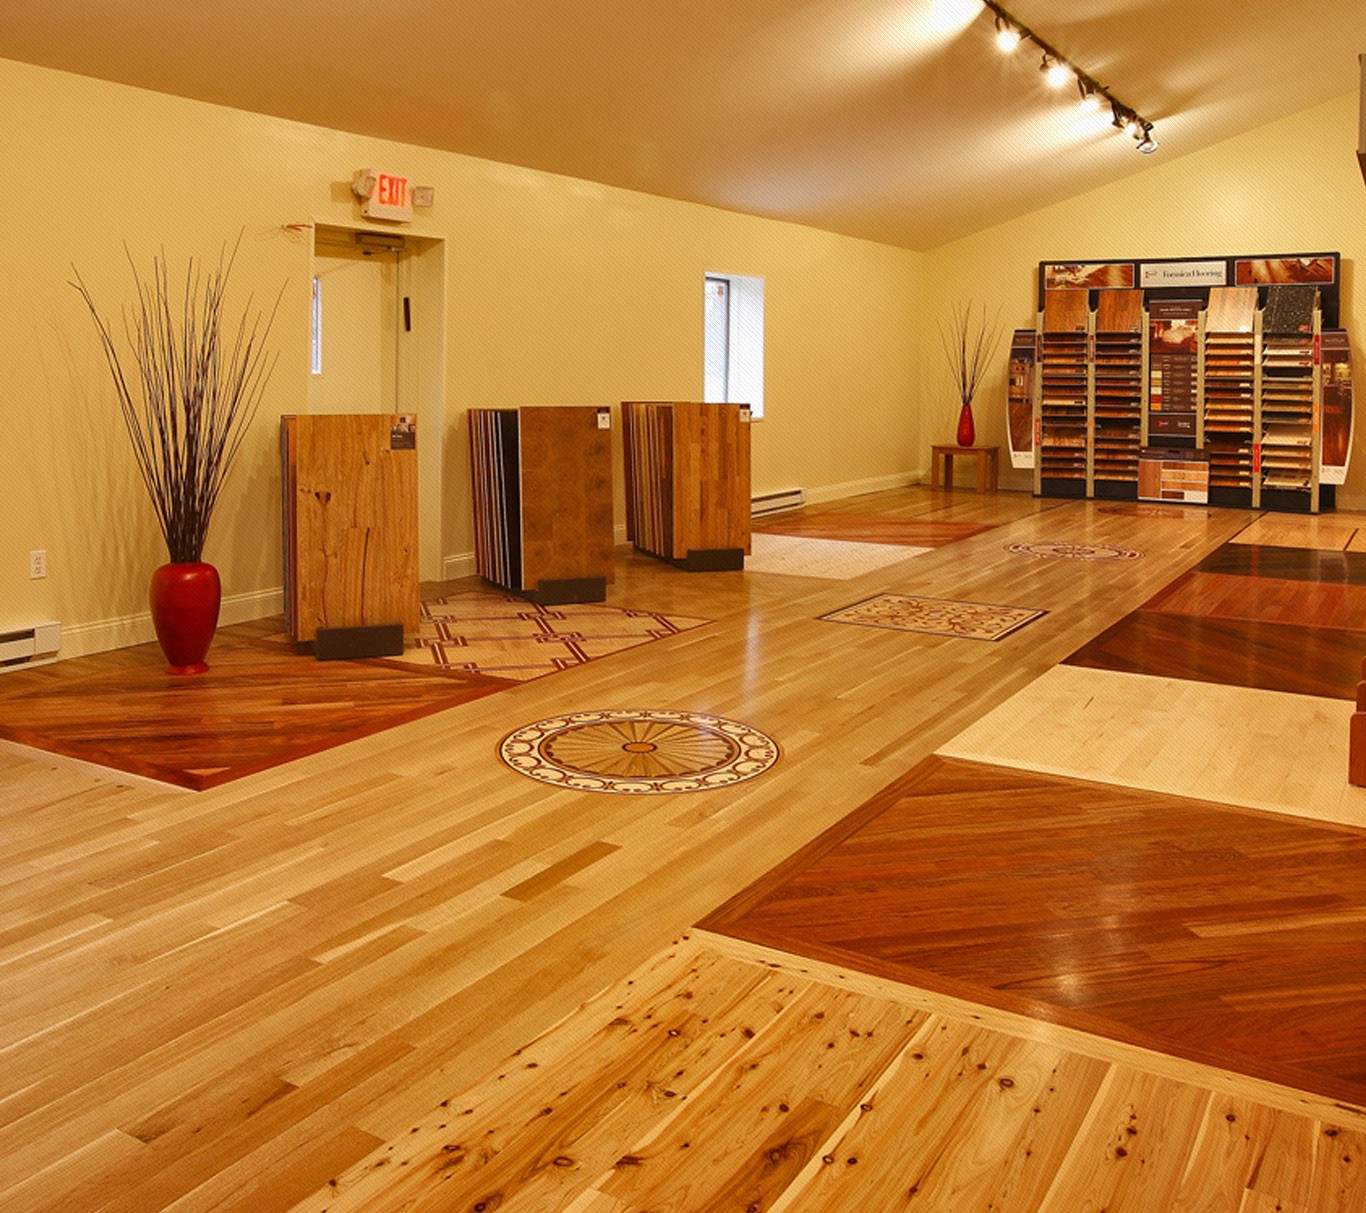 Top 5 inexpensive hardwood flooring alternatives ottawa for Flooring alternatives